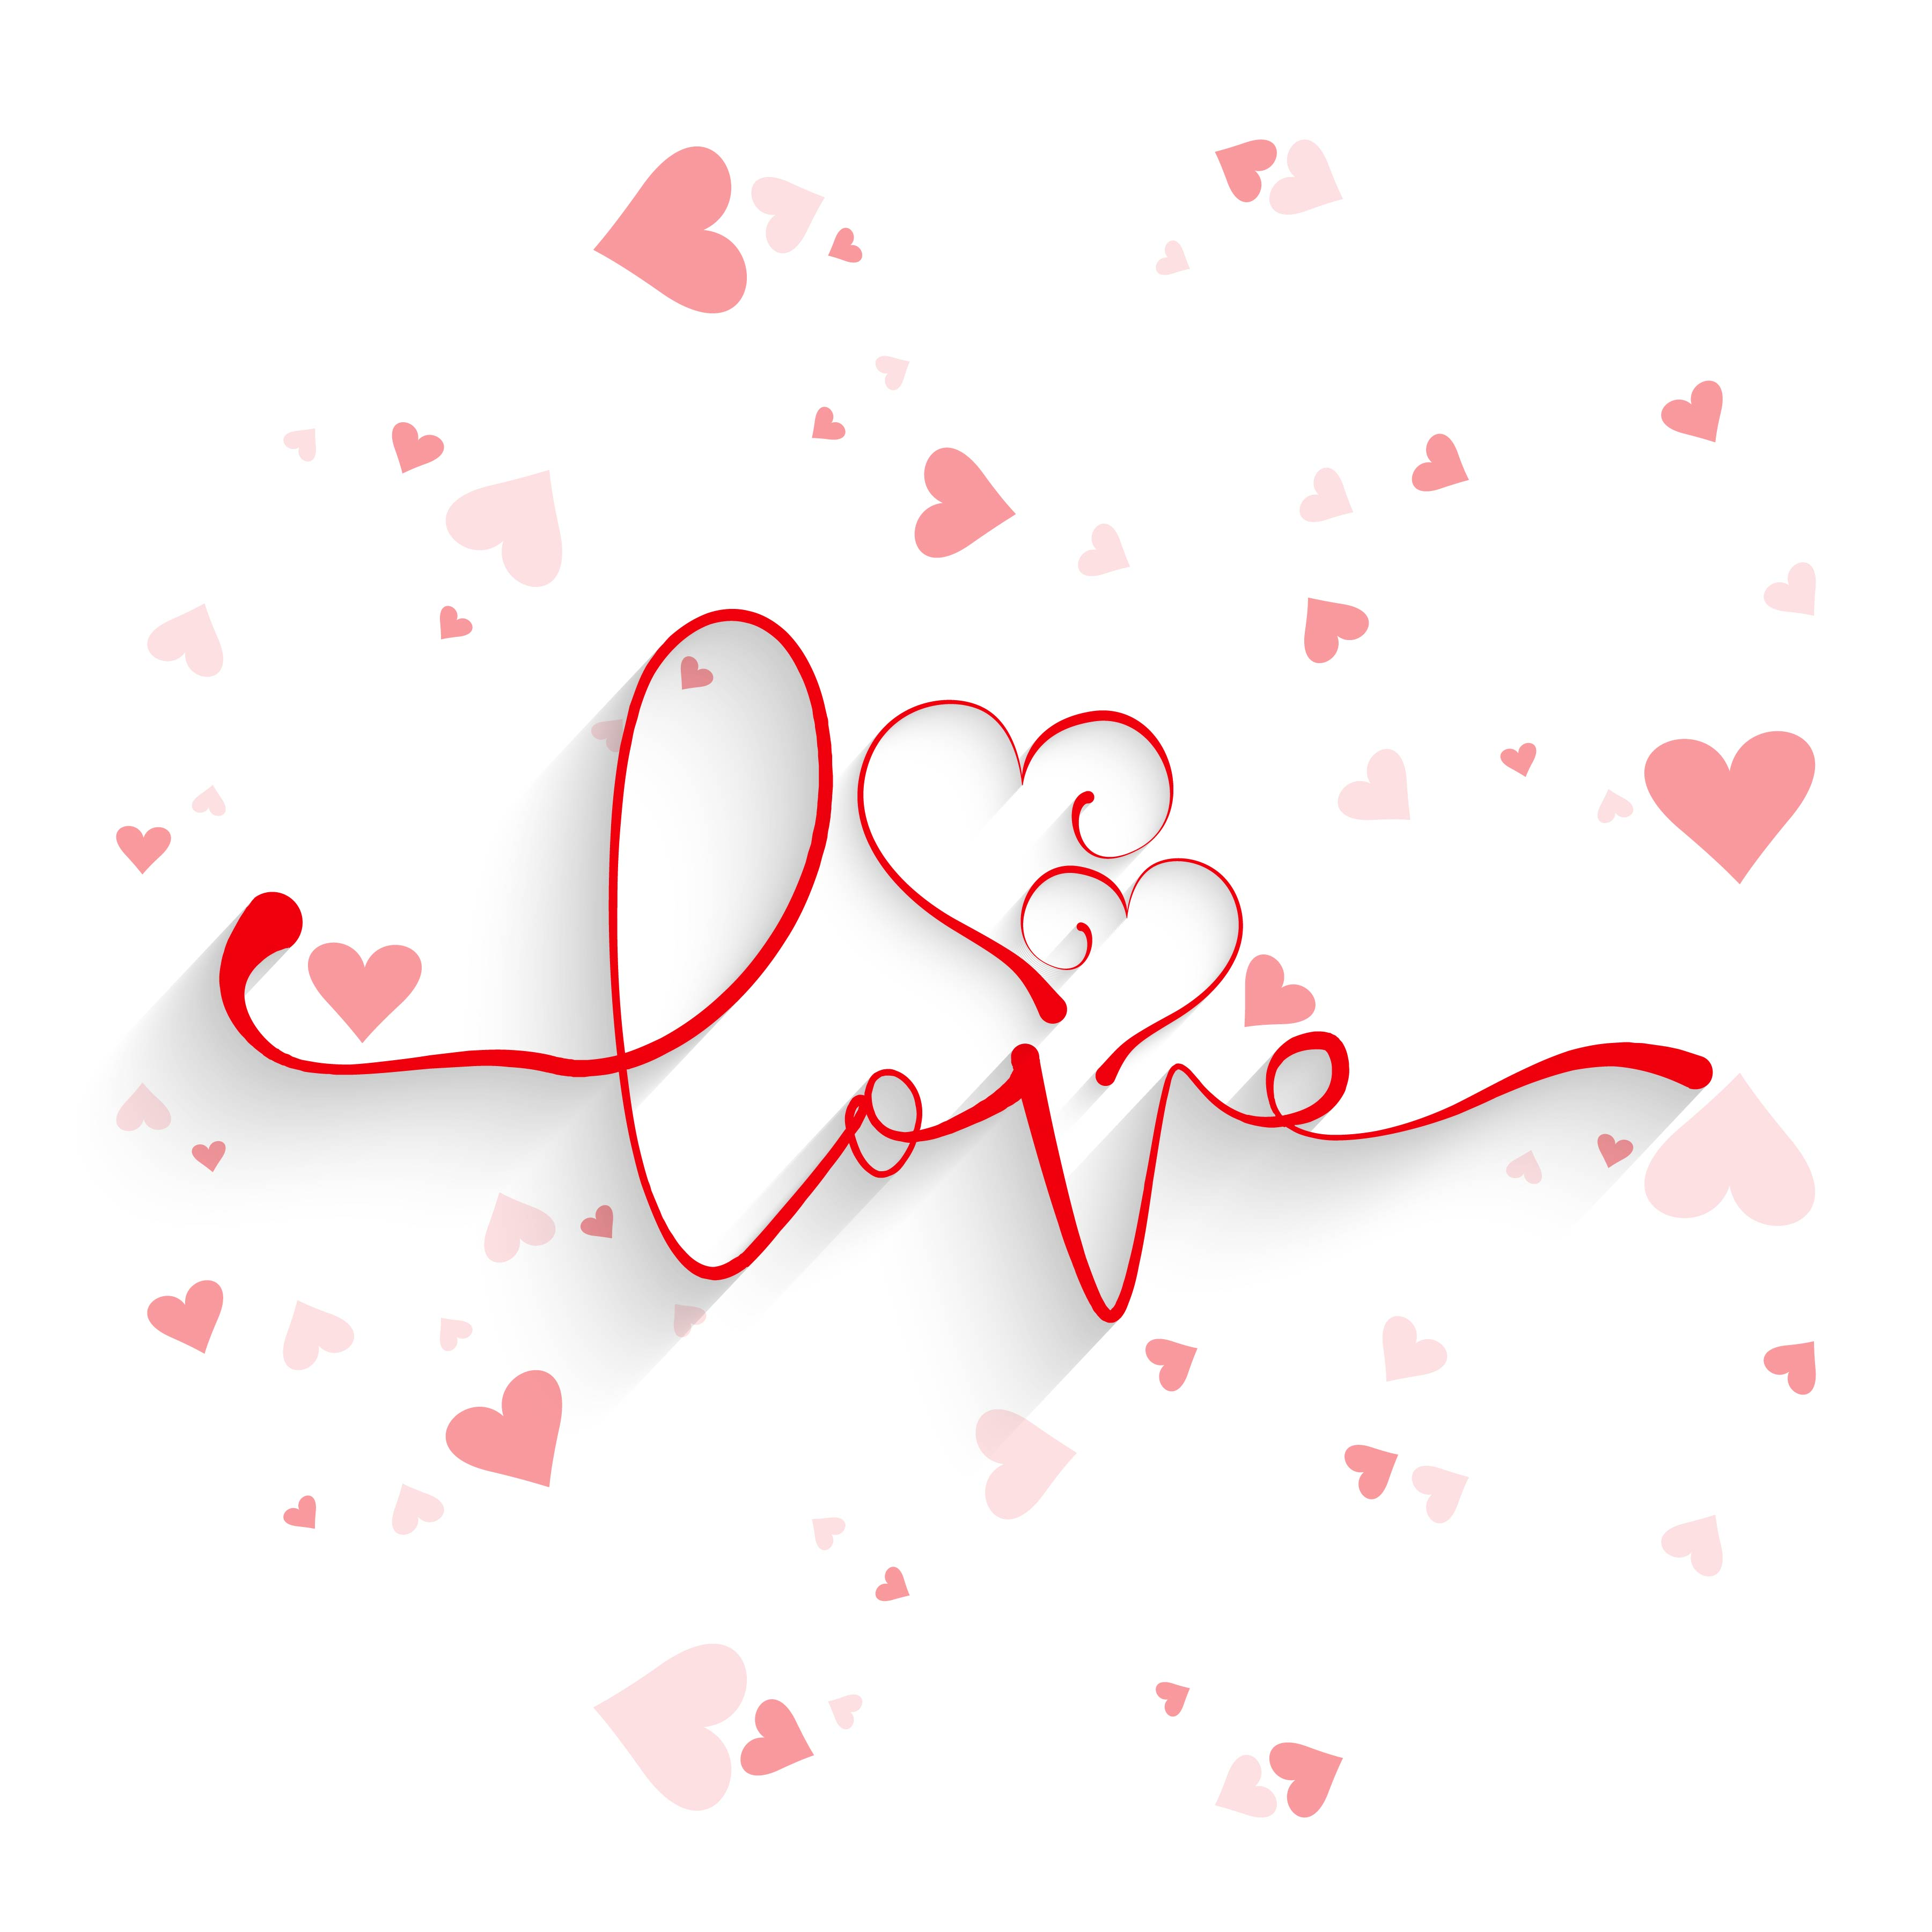 Beautiful Card Love Background With Hearts Design Download Free Vectors Clipart Graphics Vector Art